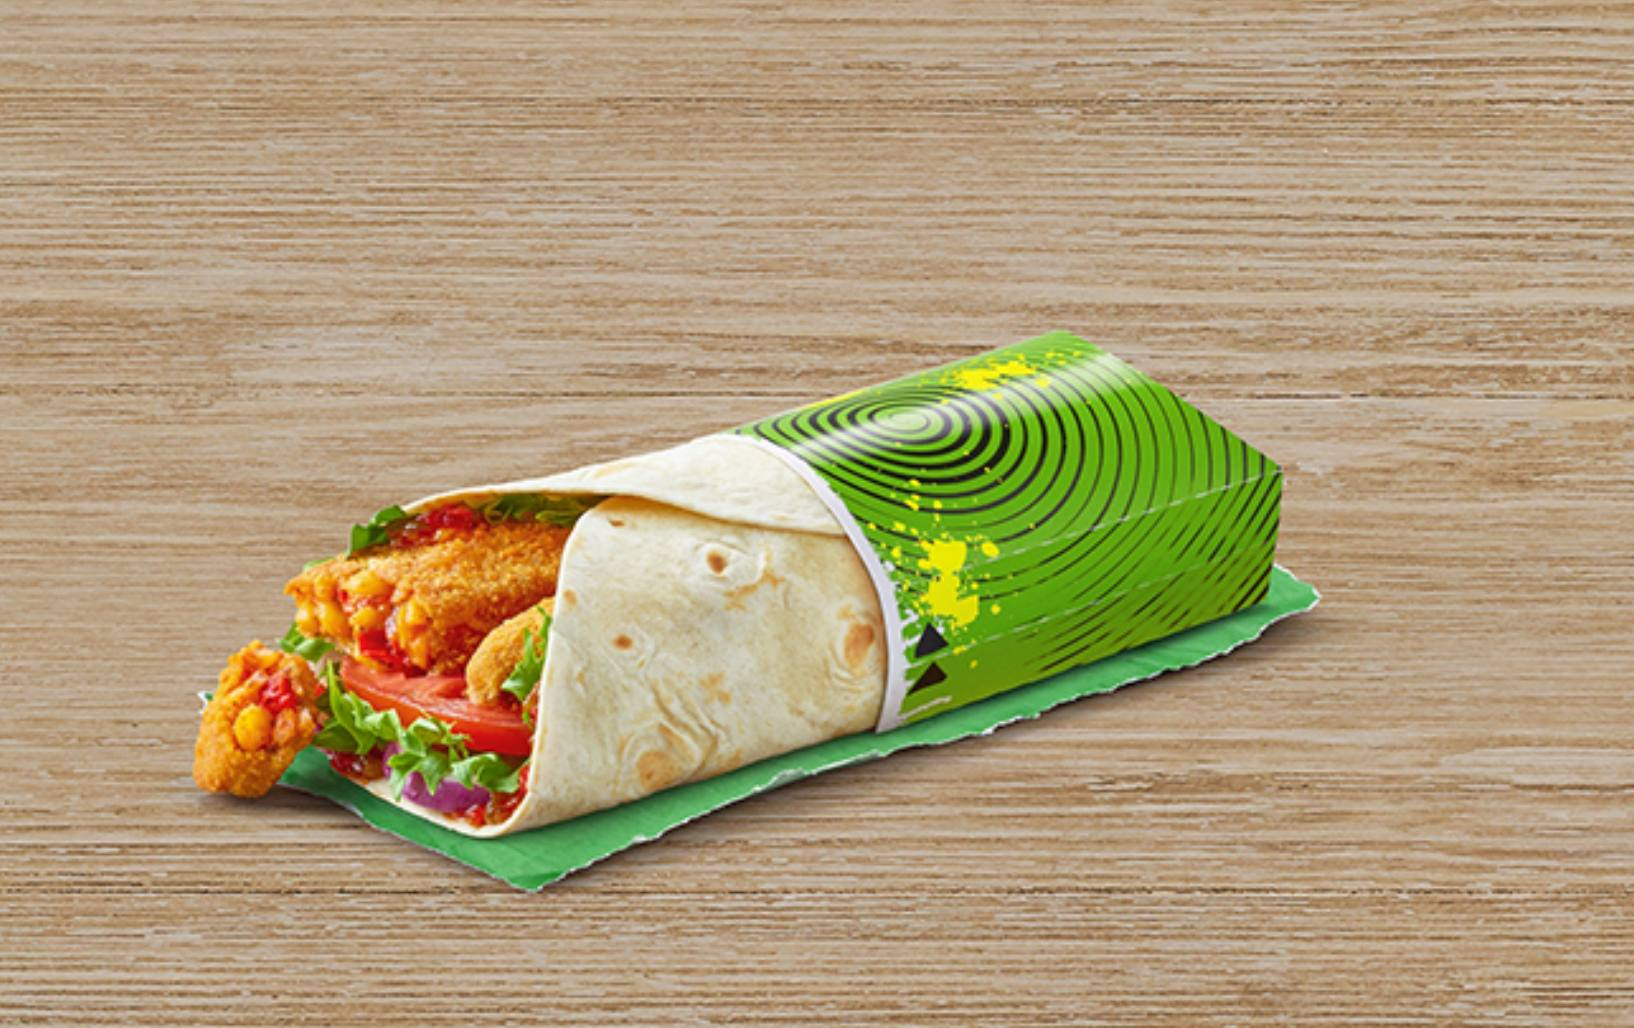 McSpicy Vegetable Wrap